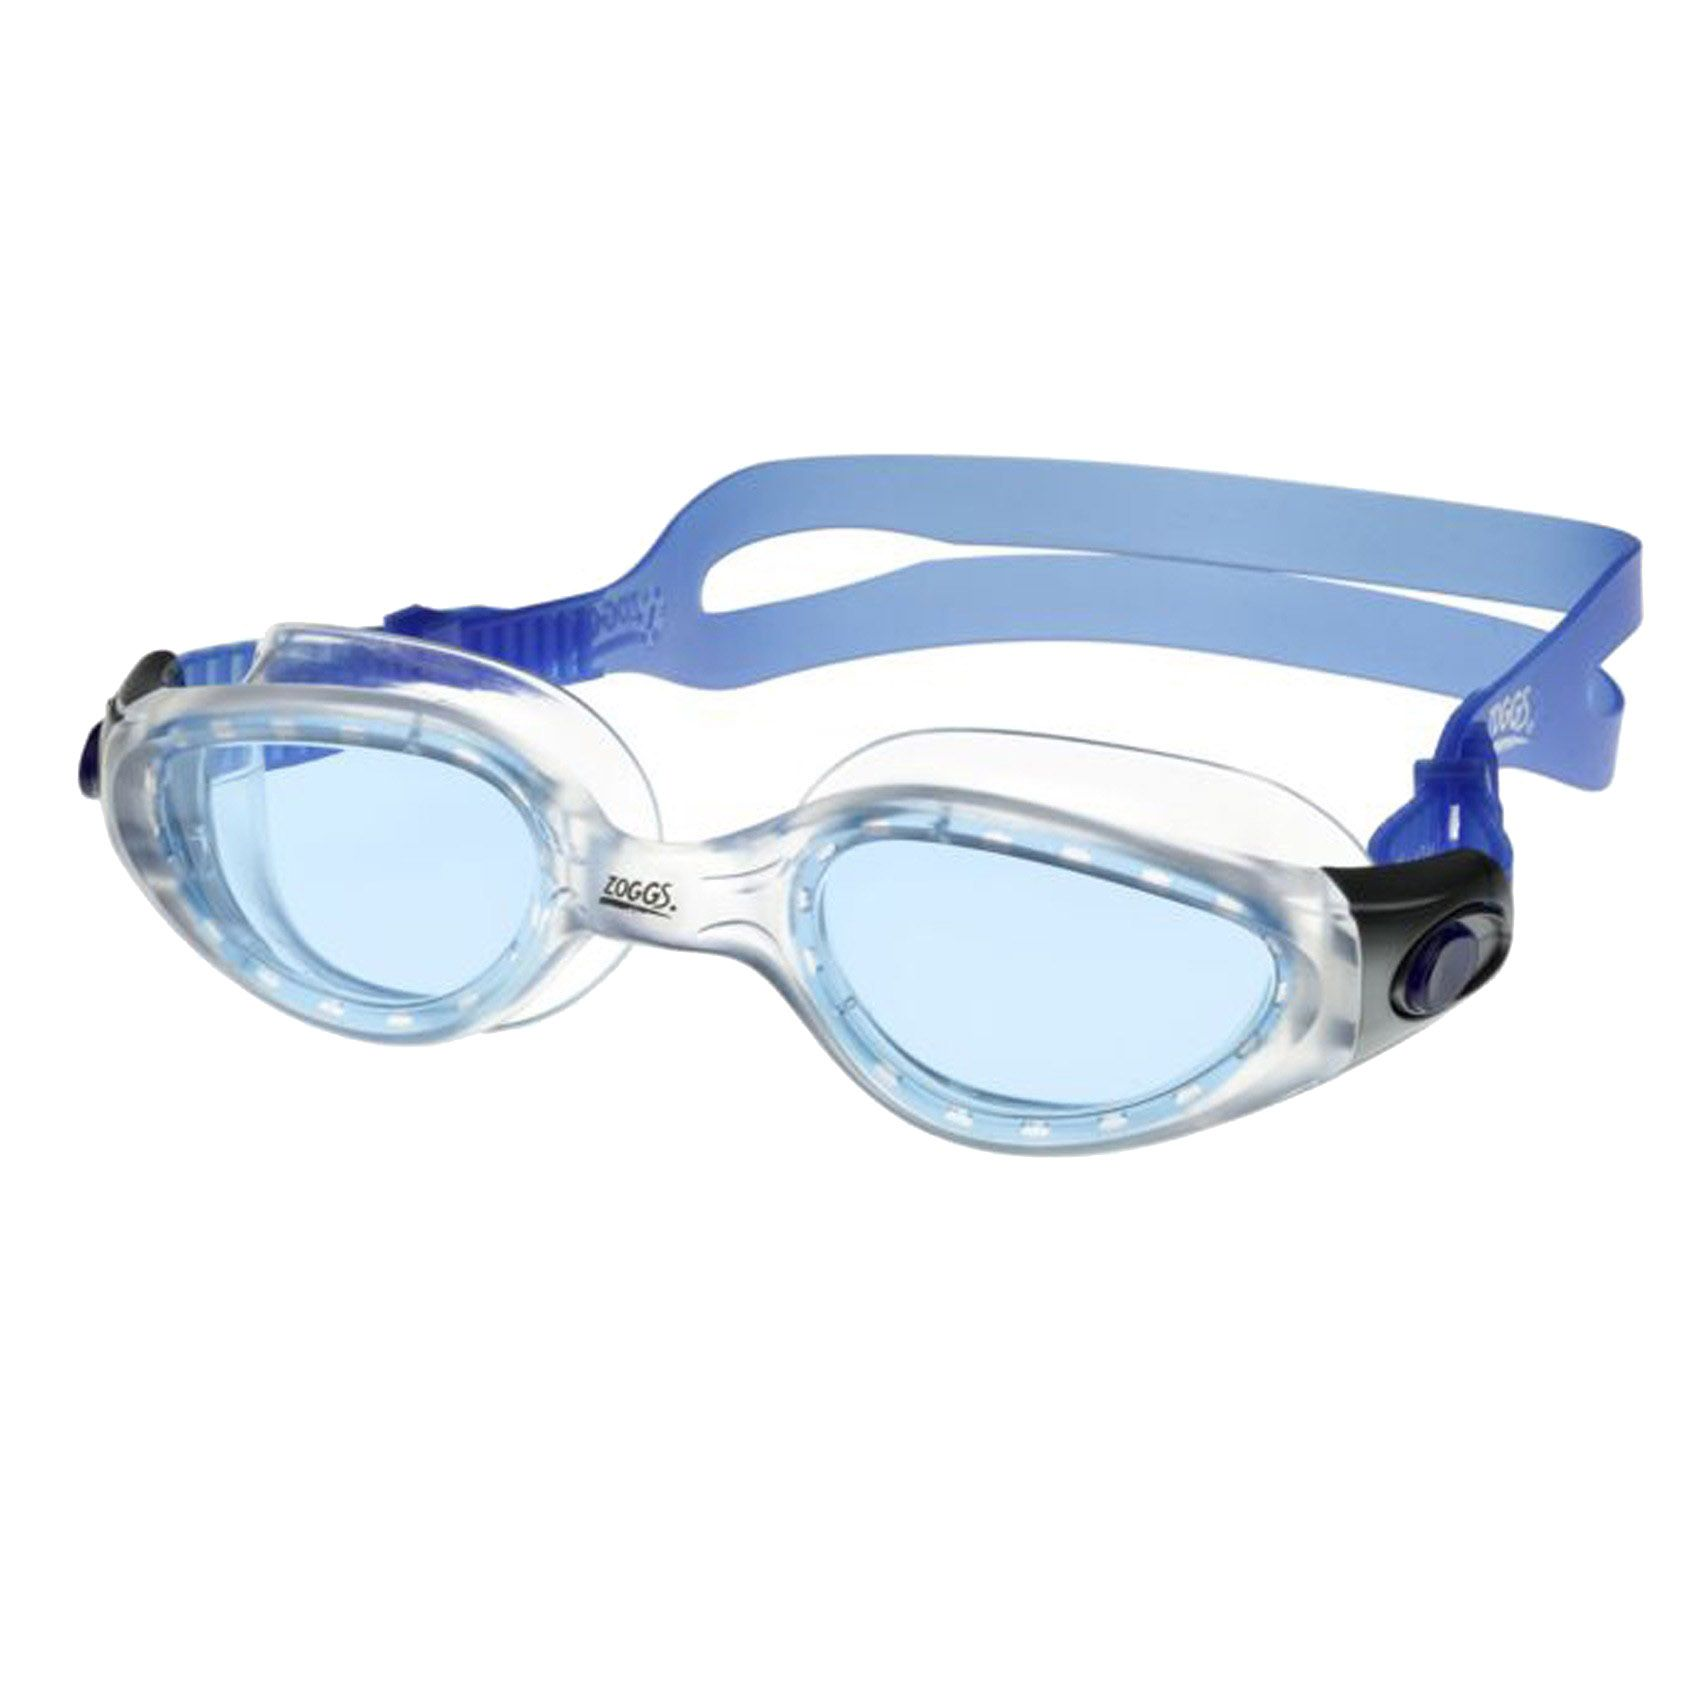 Swimming Goggles Png image #22853